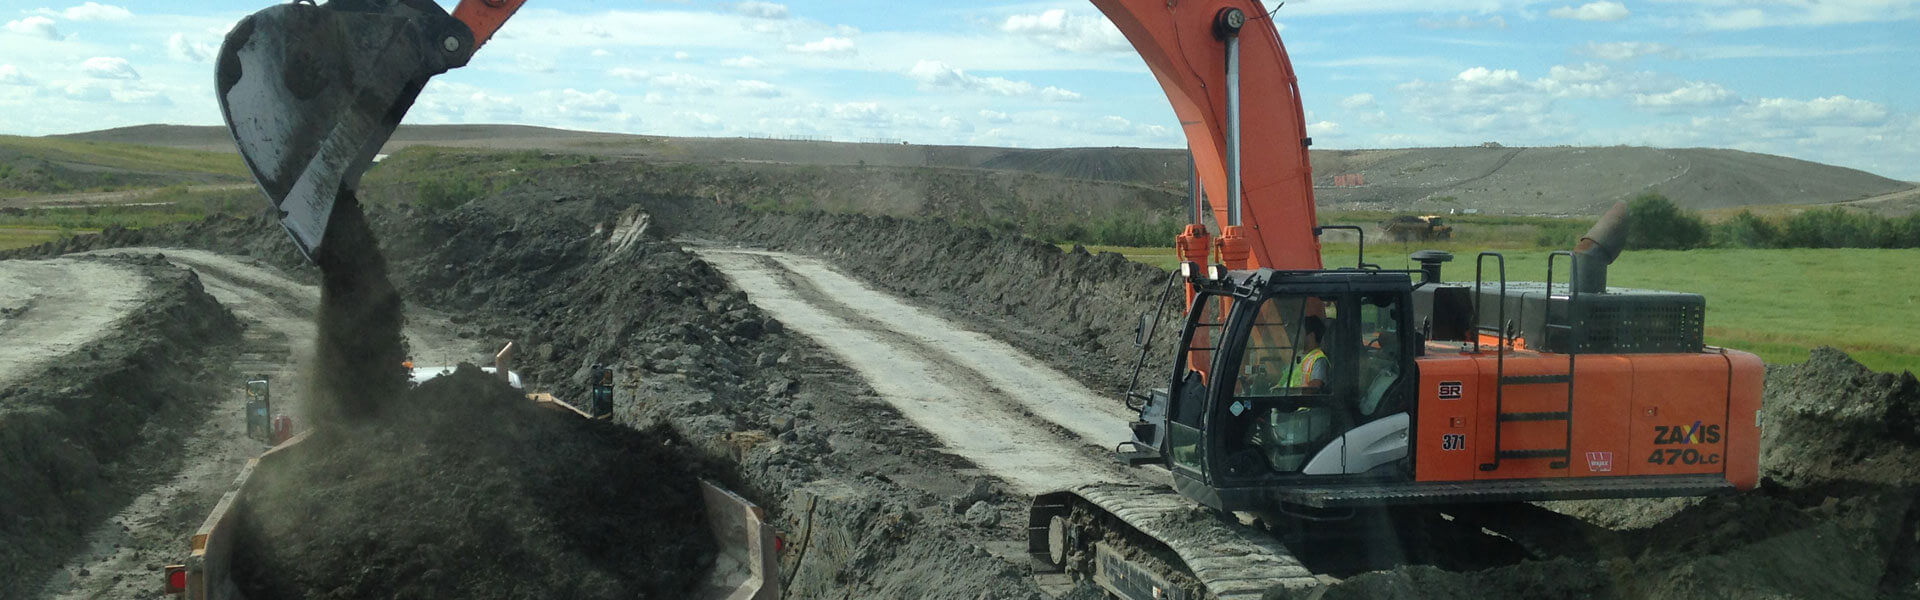 Civil Earthwork and Commercial Earthwork